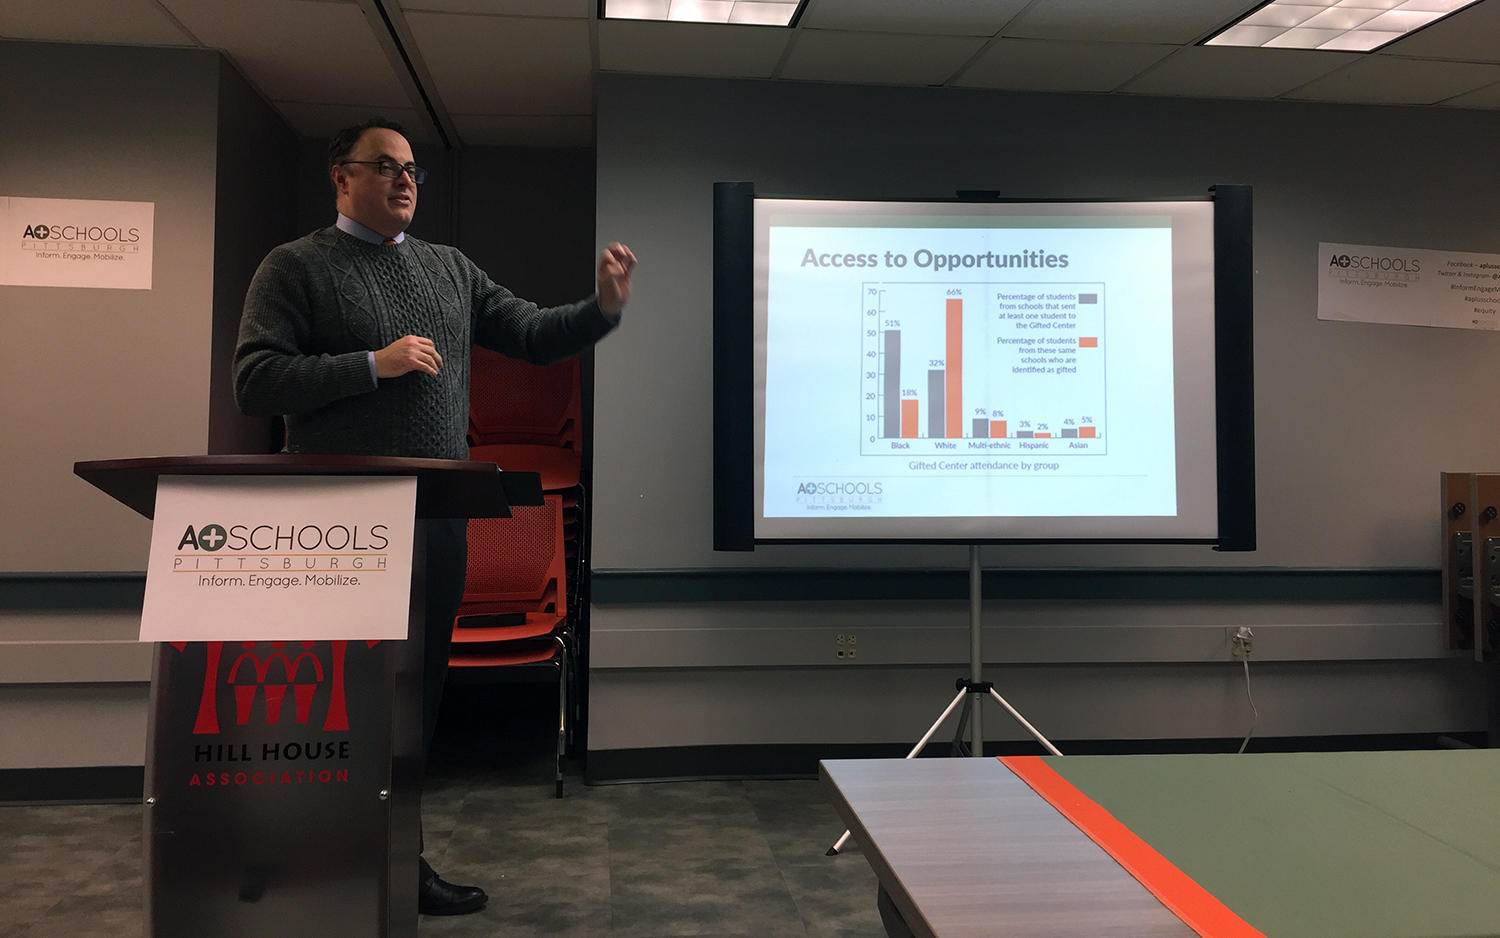 James Fogarty, executive director of A+ Schools, explains the results of the advocacy group's annual report. (Photo by Mary Niederberger/PublicSource)